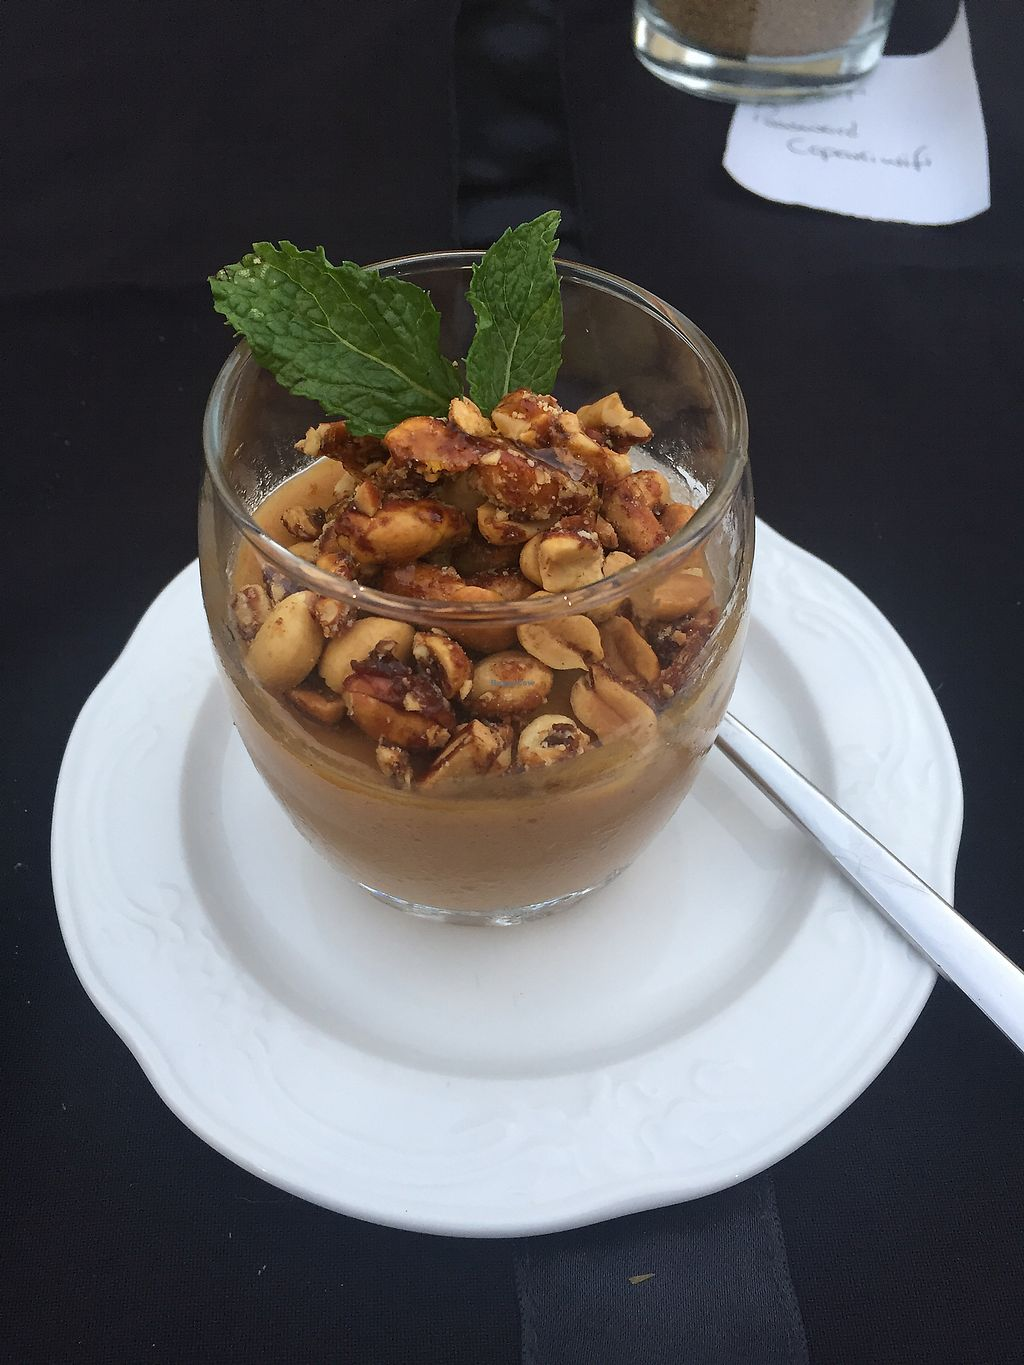 """Photo of Copaki Restaurant Bar  by <a href=""""/members/profile/StephenCollins"""">StephenCollins</a> <br/>Vegan Dessert!!! <br/> August 8, 2017  - <a href='/contact/abuse/image/95699/290557'>Report</a>"""